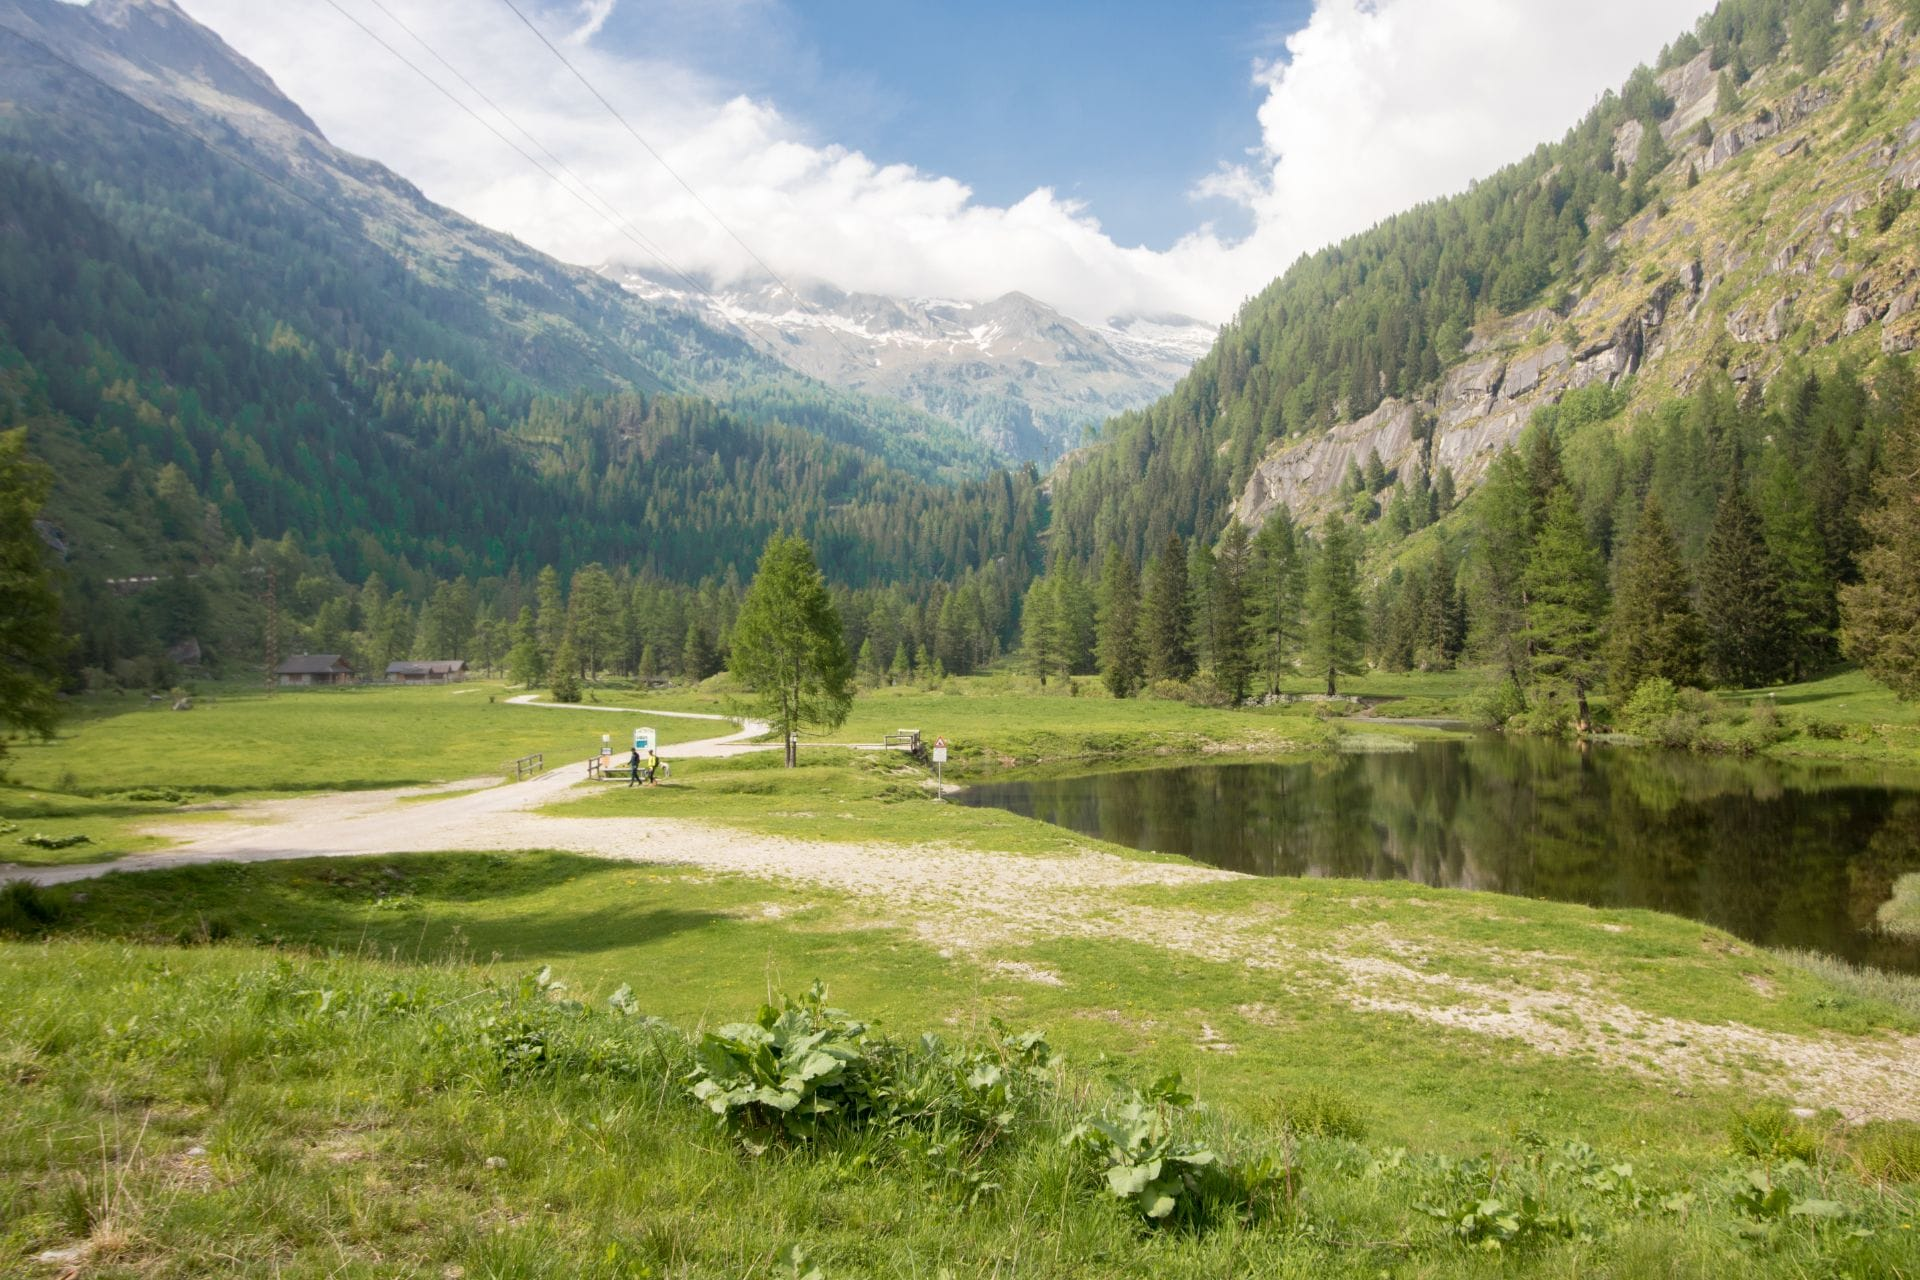 lakes-trees-and-mountains-fly-fishing-trentino-italy-valle-del-chiese